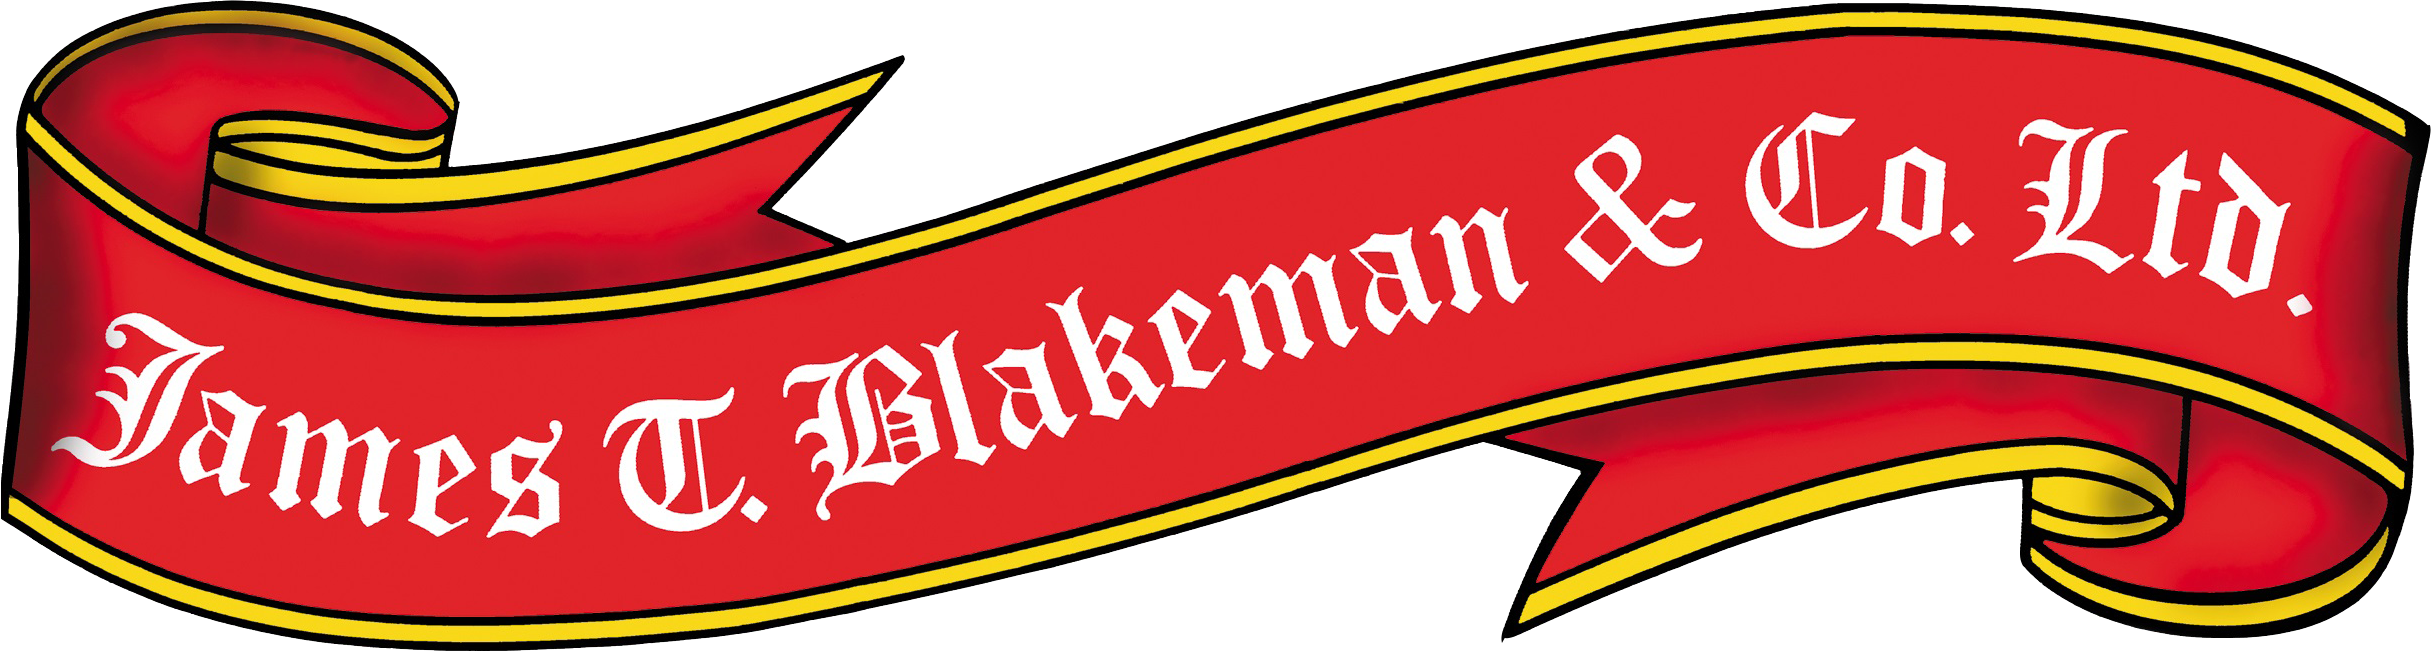 James T. Blakeman & Co. Ltd